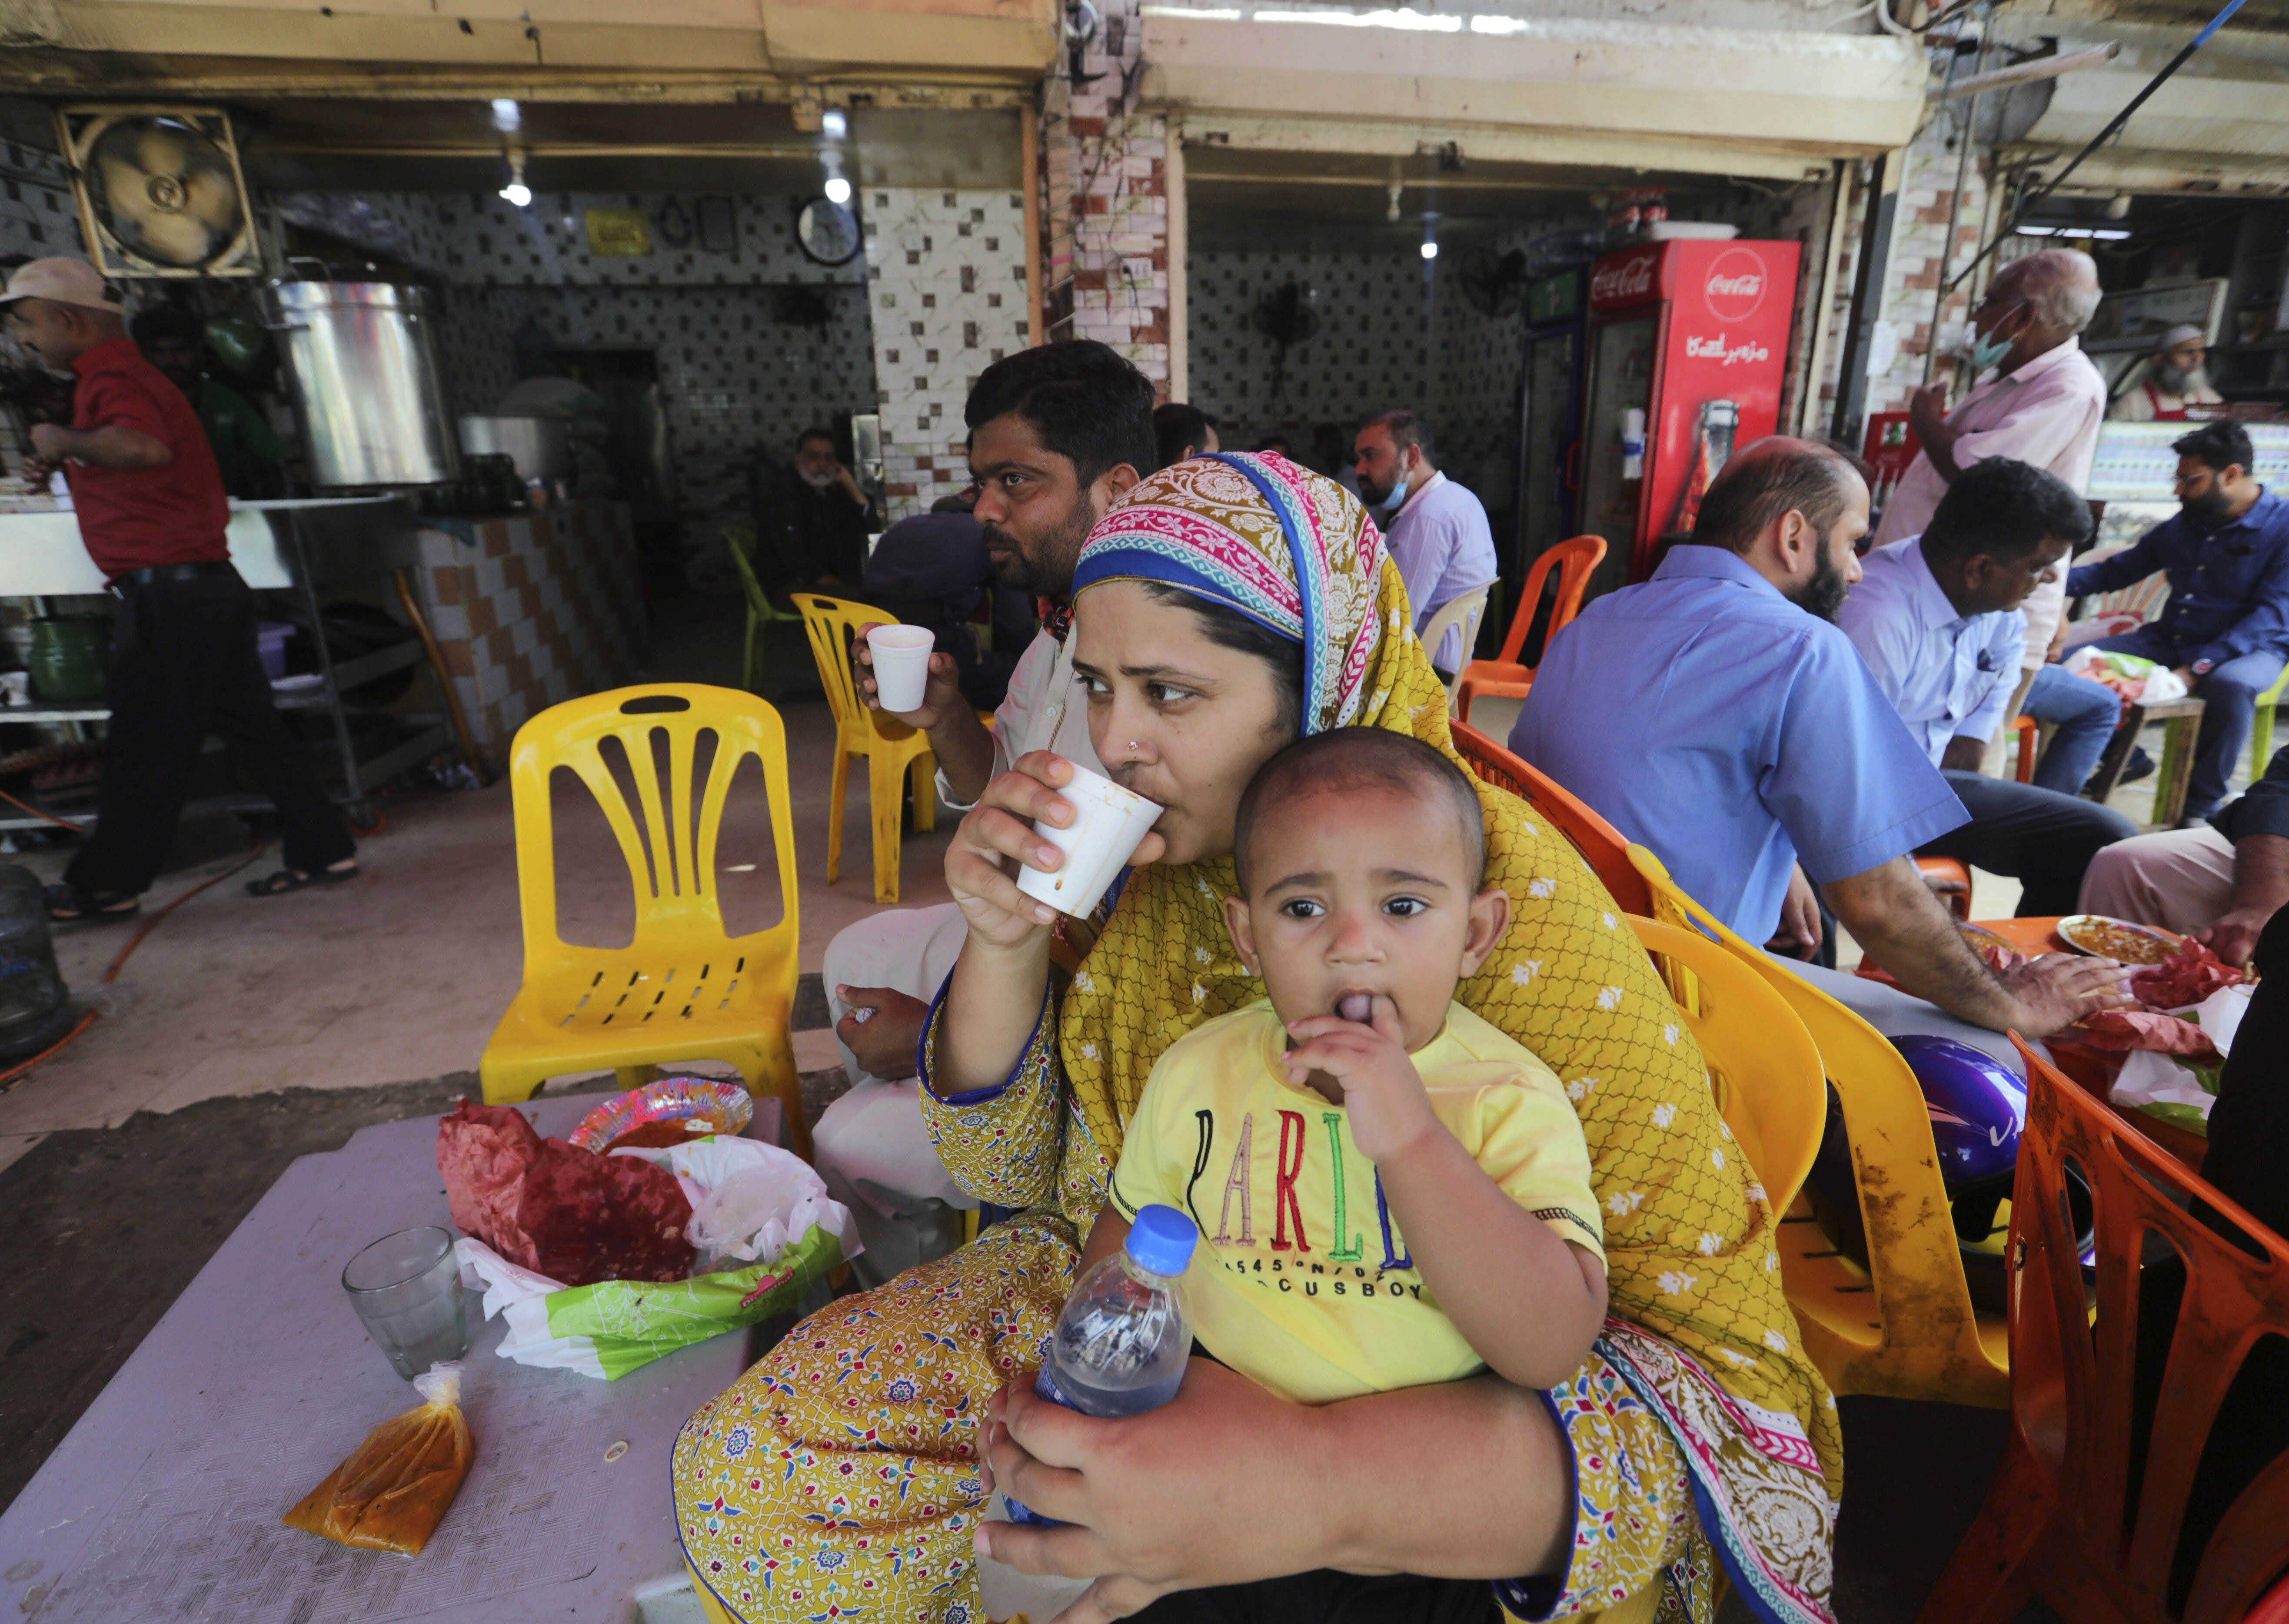 People eat at a restaurant following an ease in restrictions that had been imposed to help control the coronavirus, in Karachi, Pakistan, Monday, Aug. 10, 2020. Pakistan's daily virus infection rate has stayed under 1,000 for more than four weeks prompting the government to further ease restrictions for restaurants, parks, gyms and cinemas. (AP Photo/Fareed Khan)